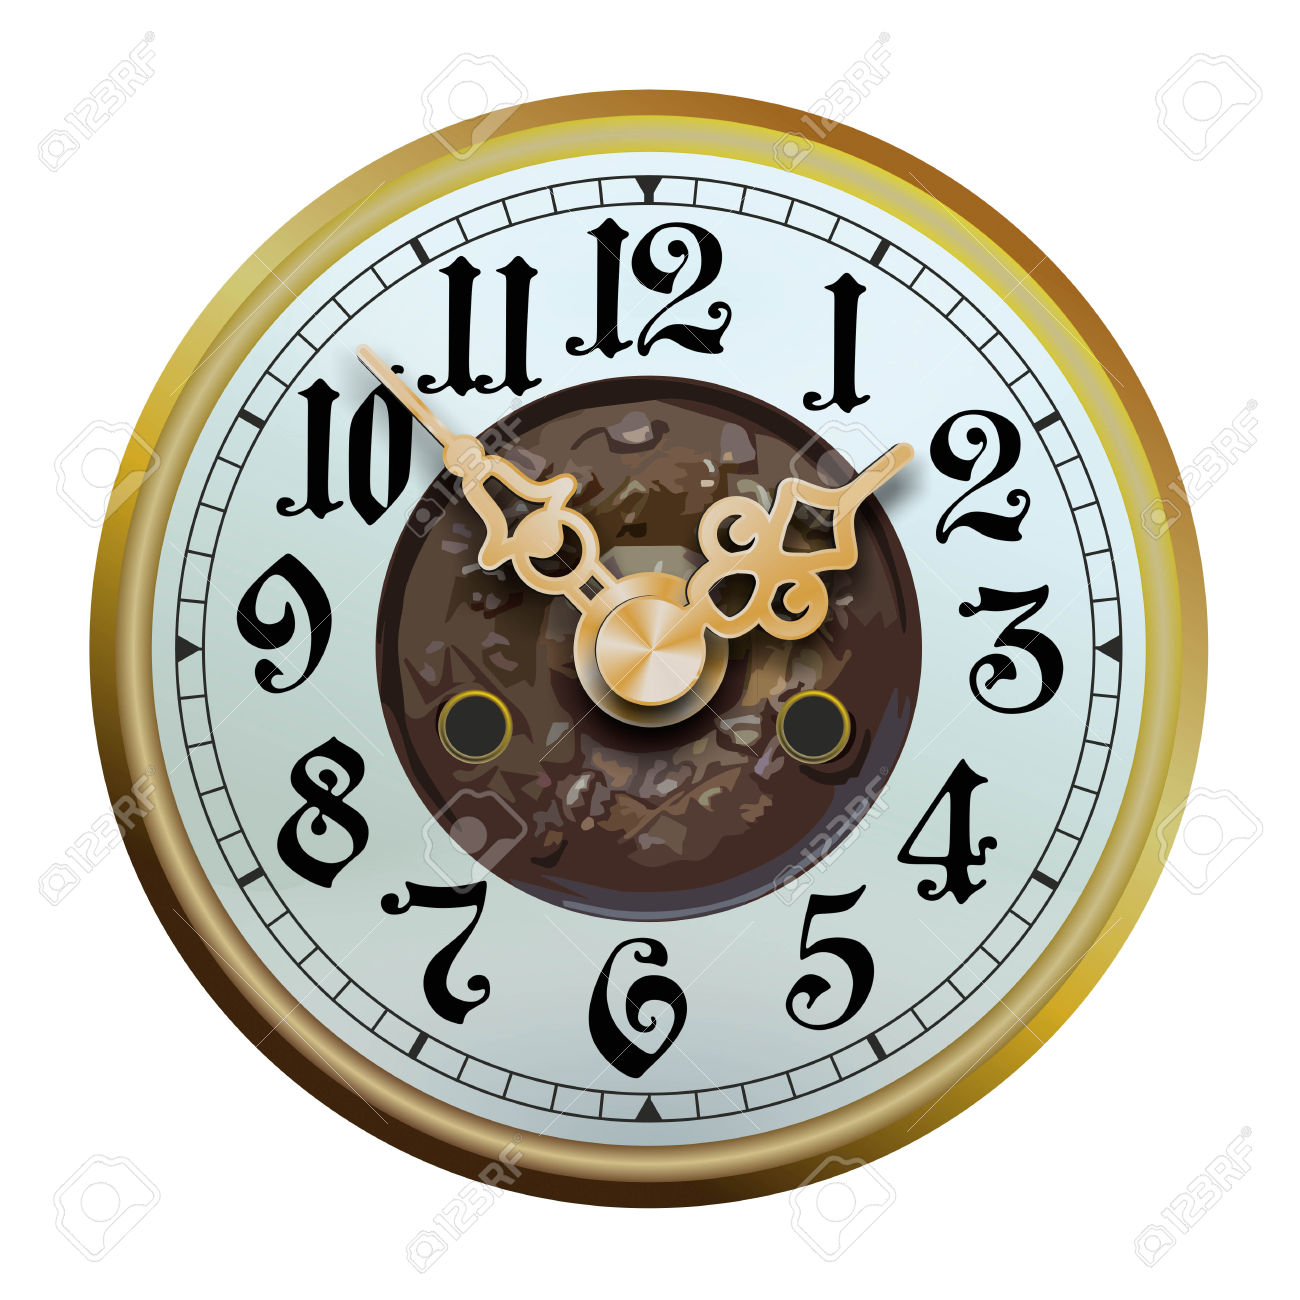 Old, Historic Watch Face With Embellished Watch Hands Stock Photo.